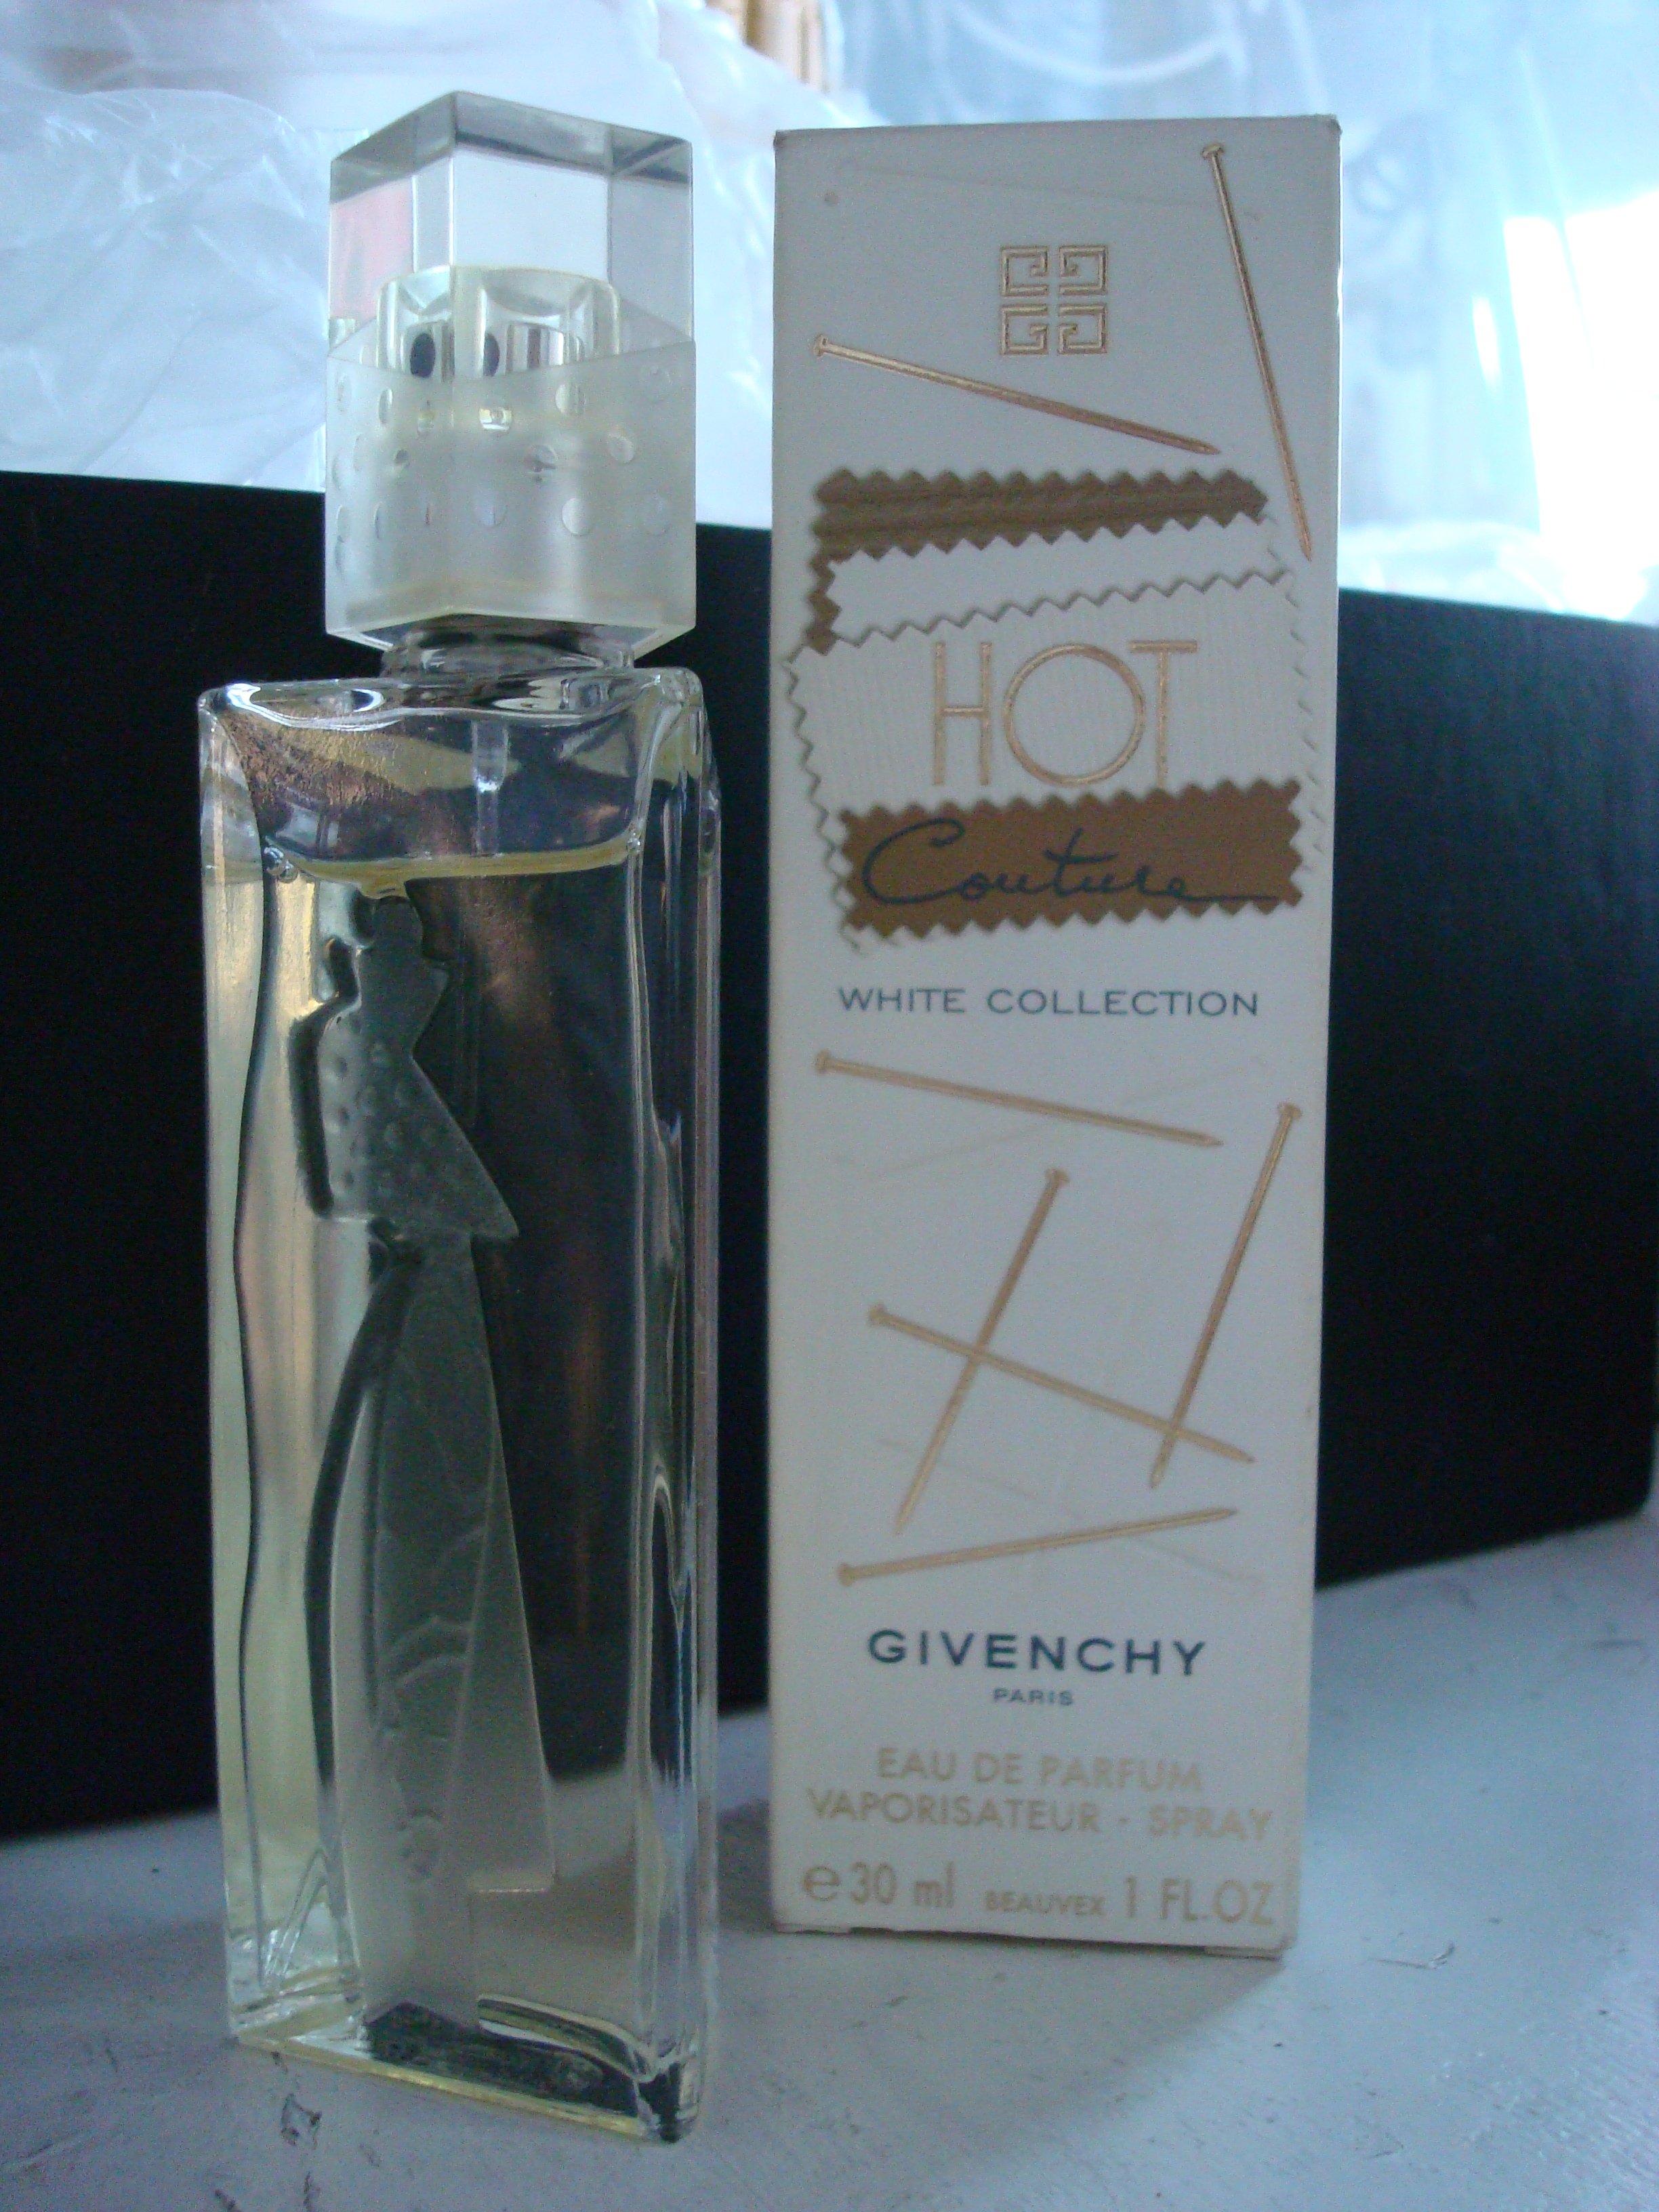 Парфюм дня - Hot Couture White Collection Givenchy